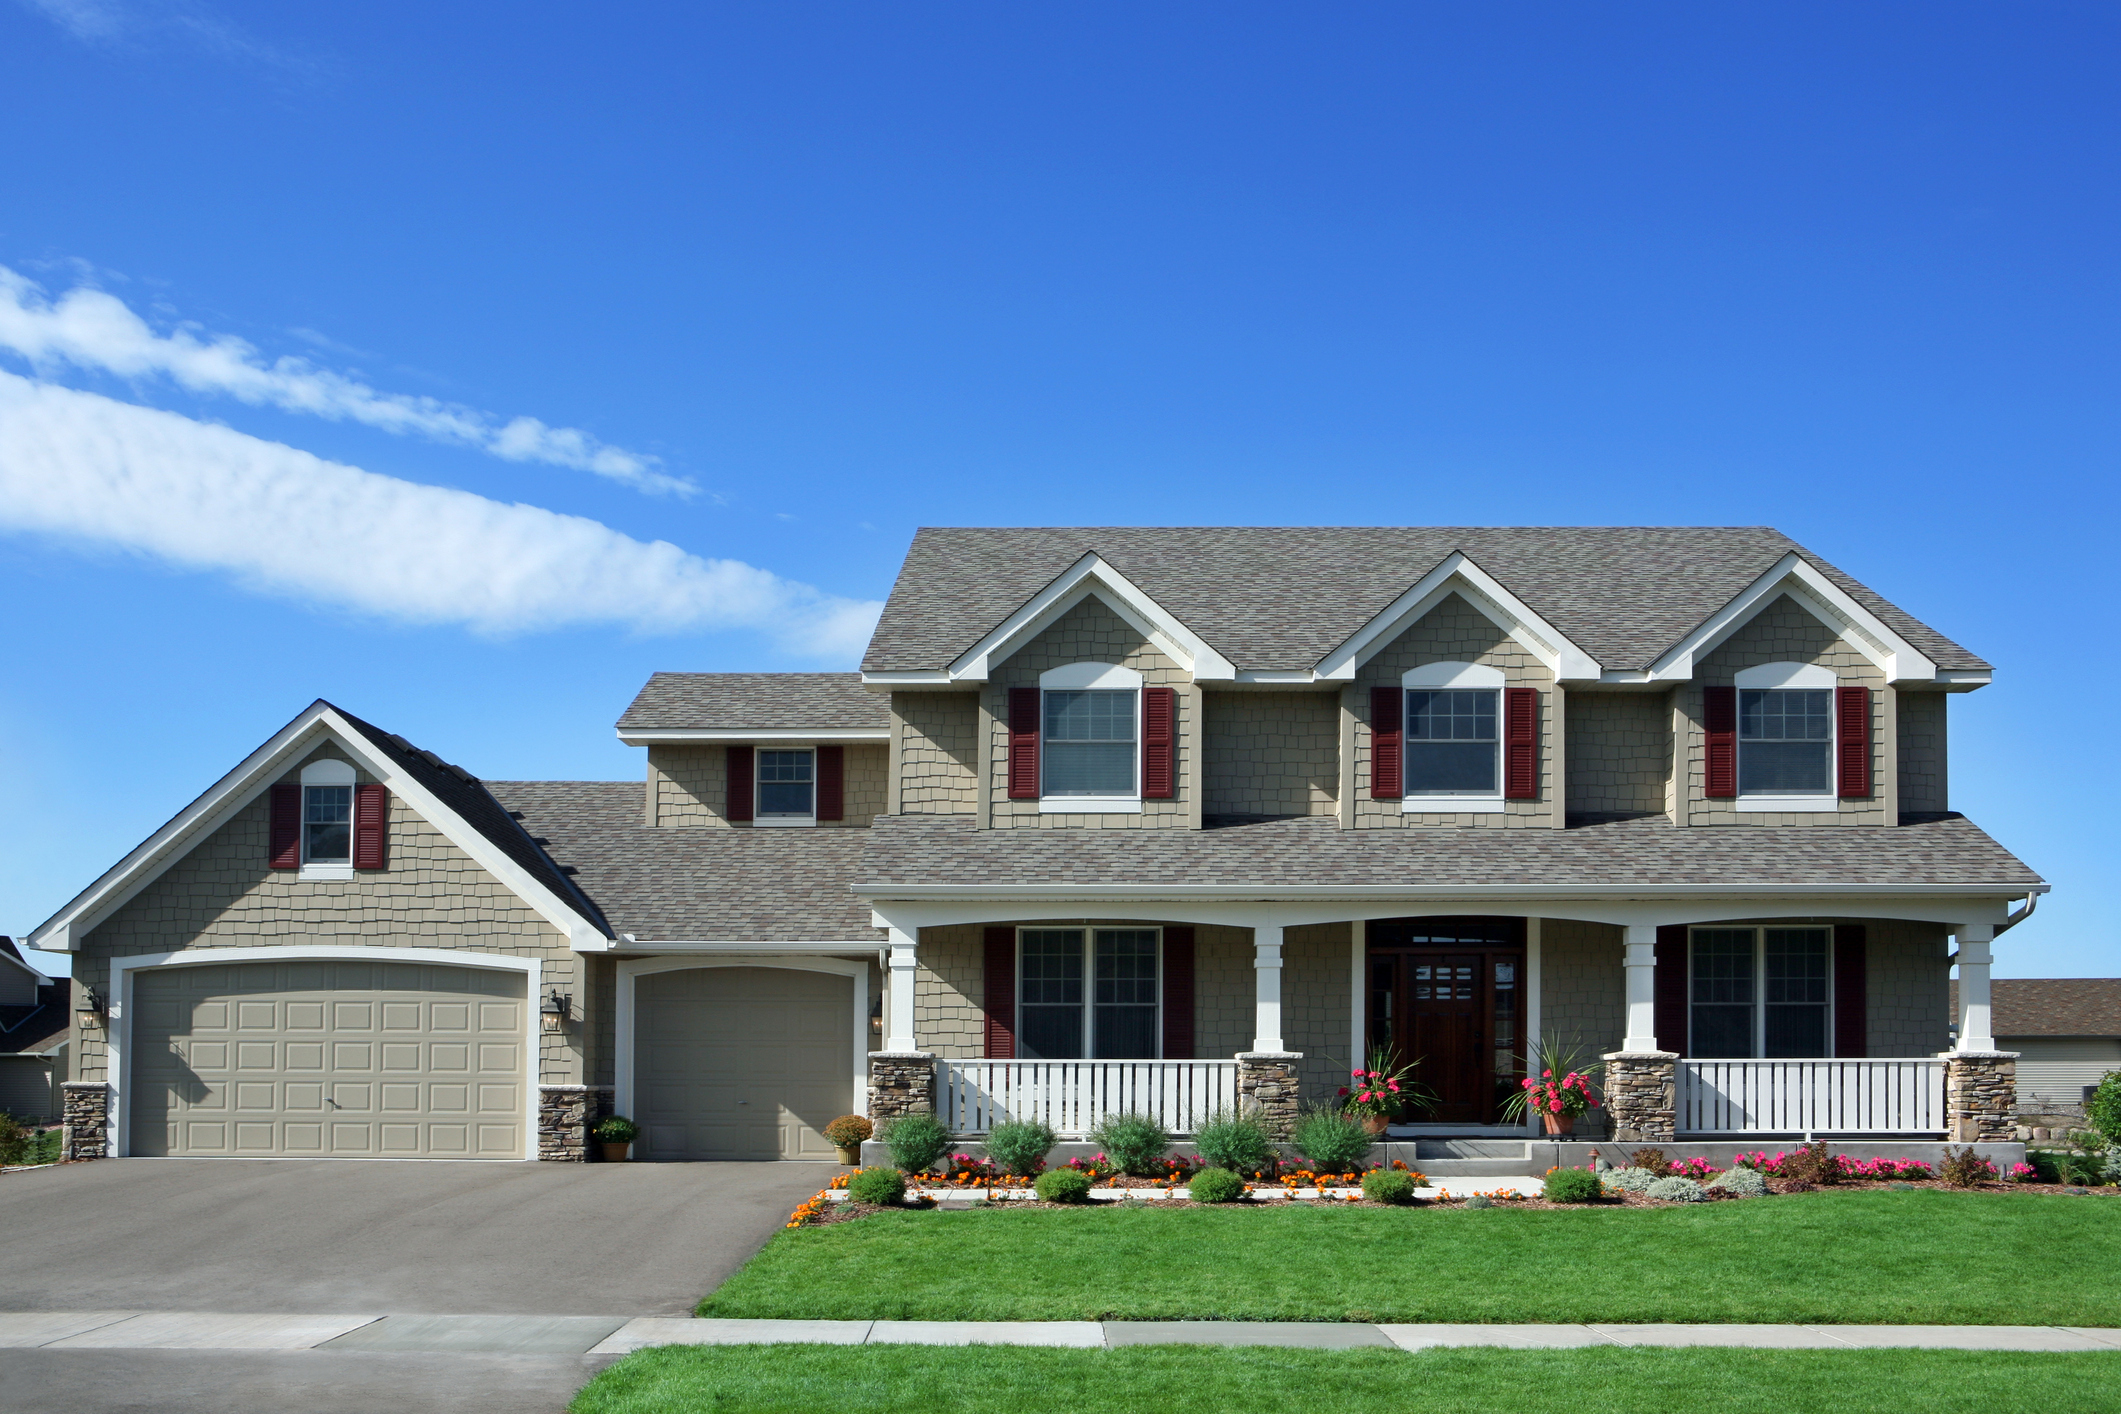 Roofing Waterbury Ct Choose A Trusted Company For Your